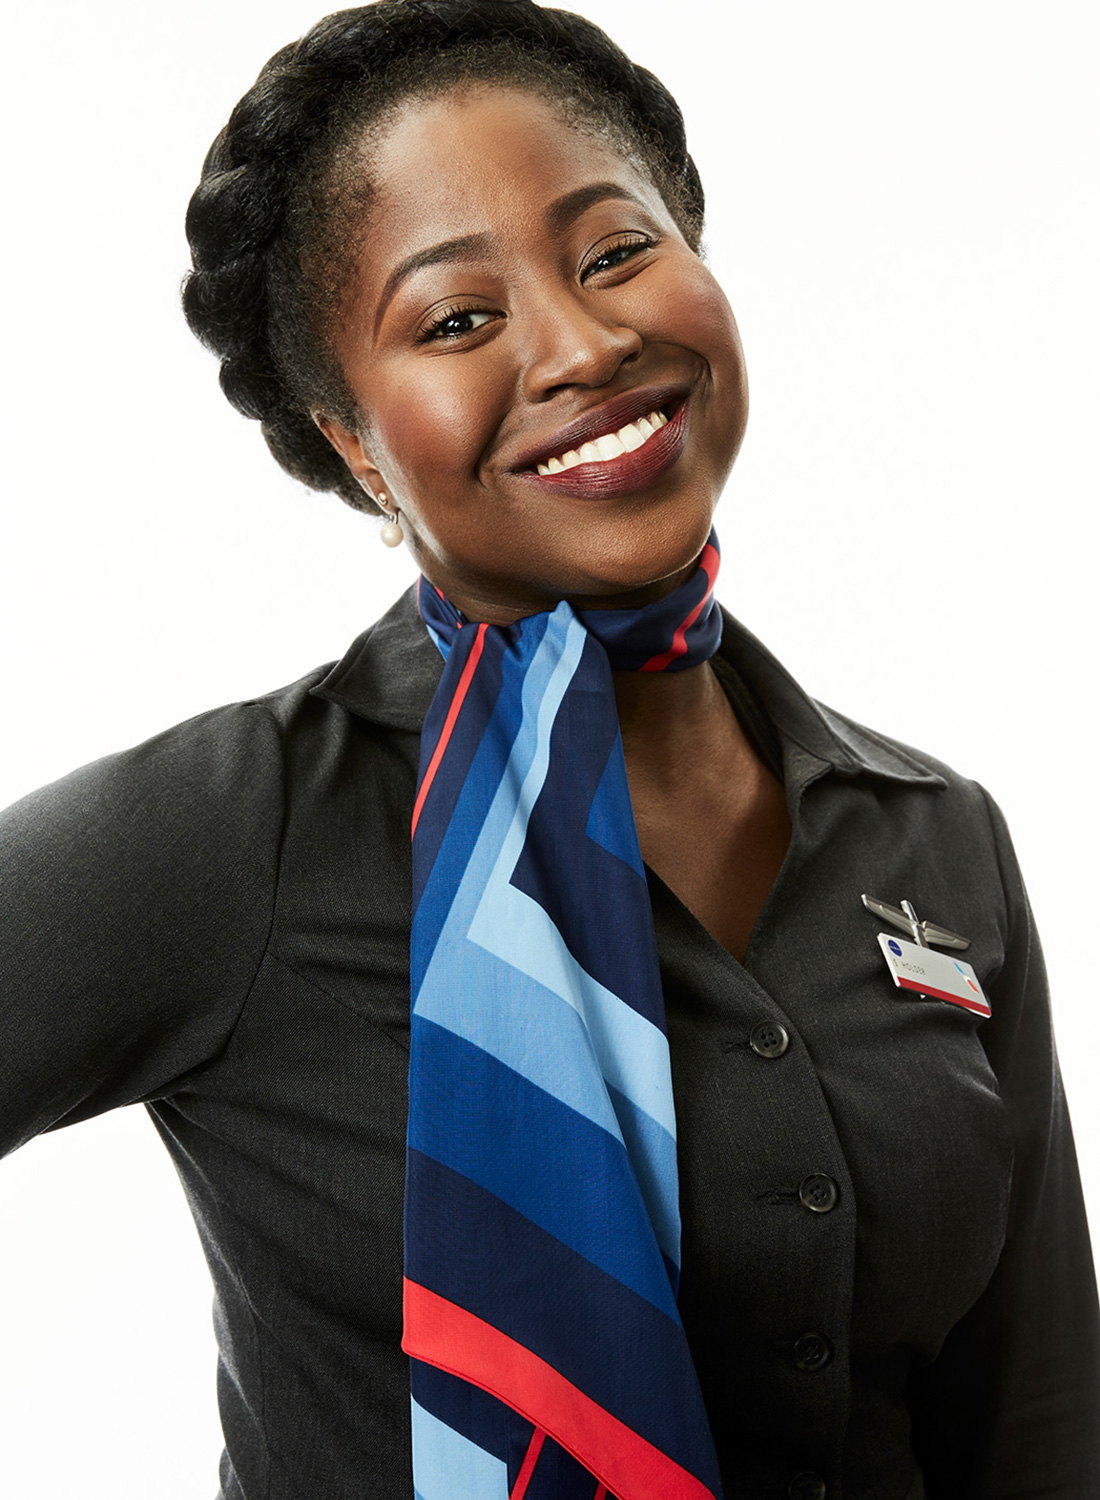 160920_AmericanAirlines_Portraits_By_BriJohnson_0023.jpg